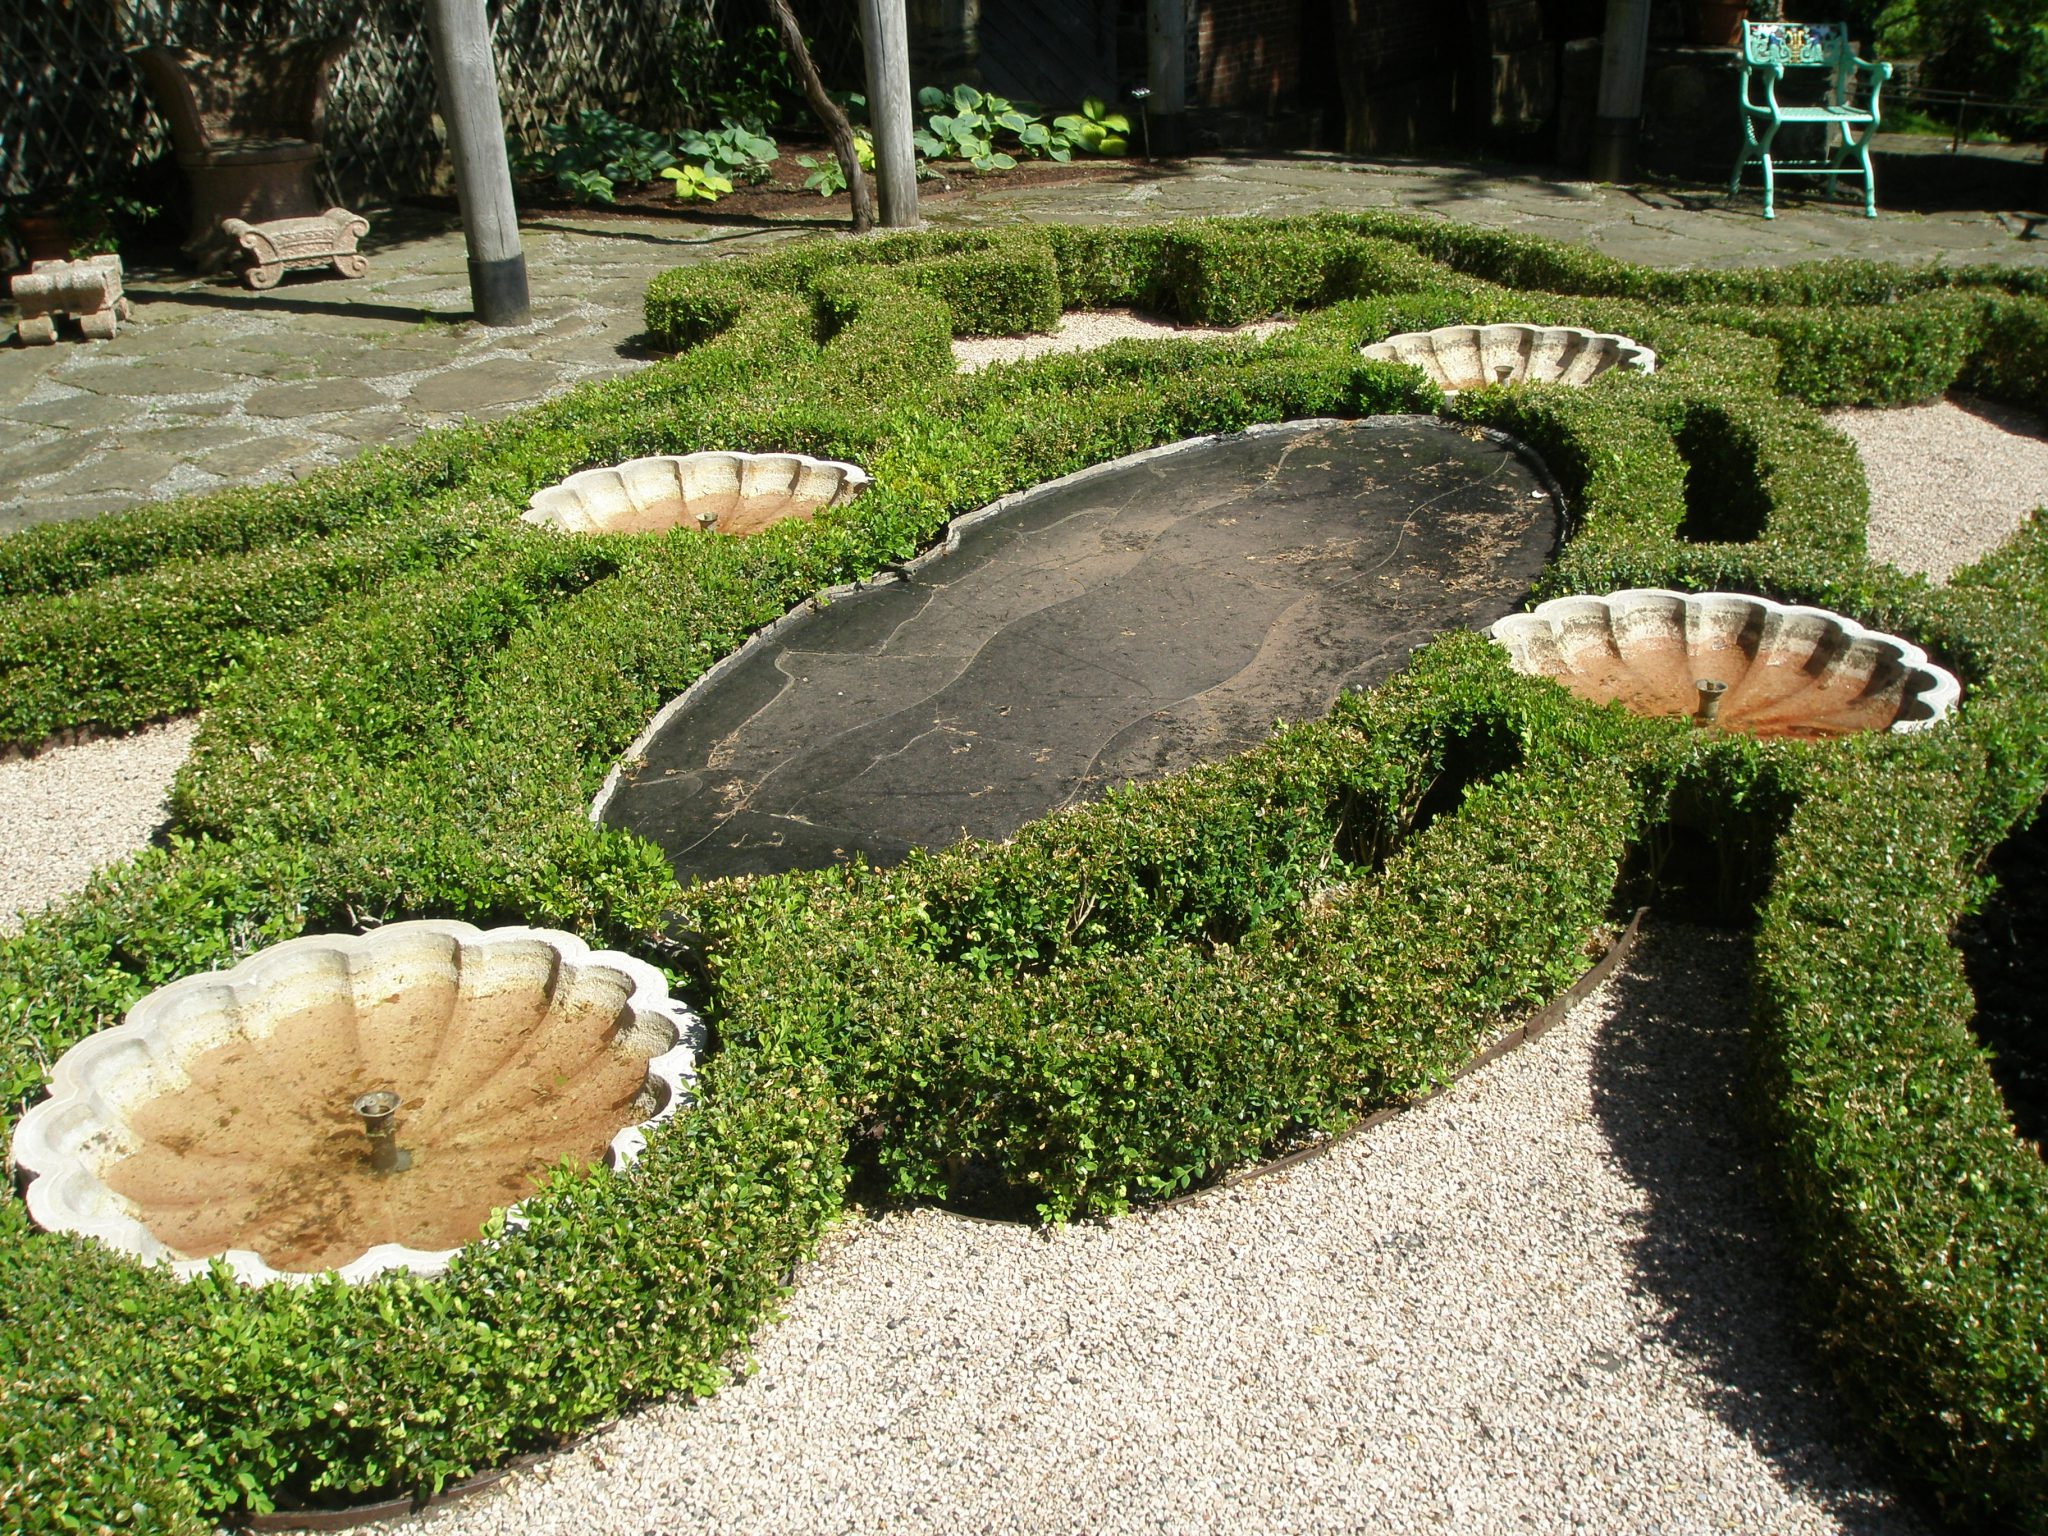 The currently-dry pools and fountains in the Afternoon Garden